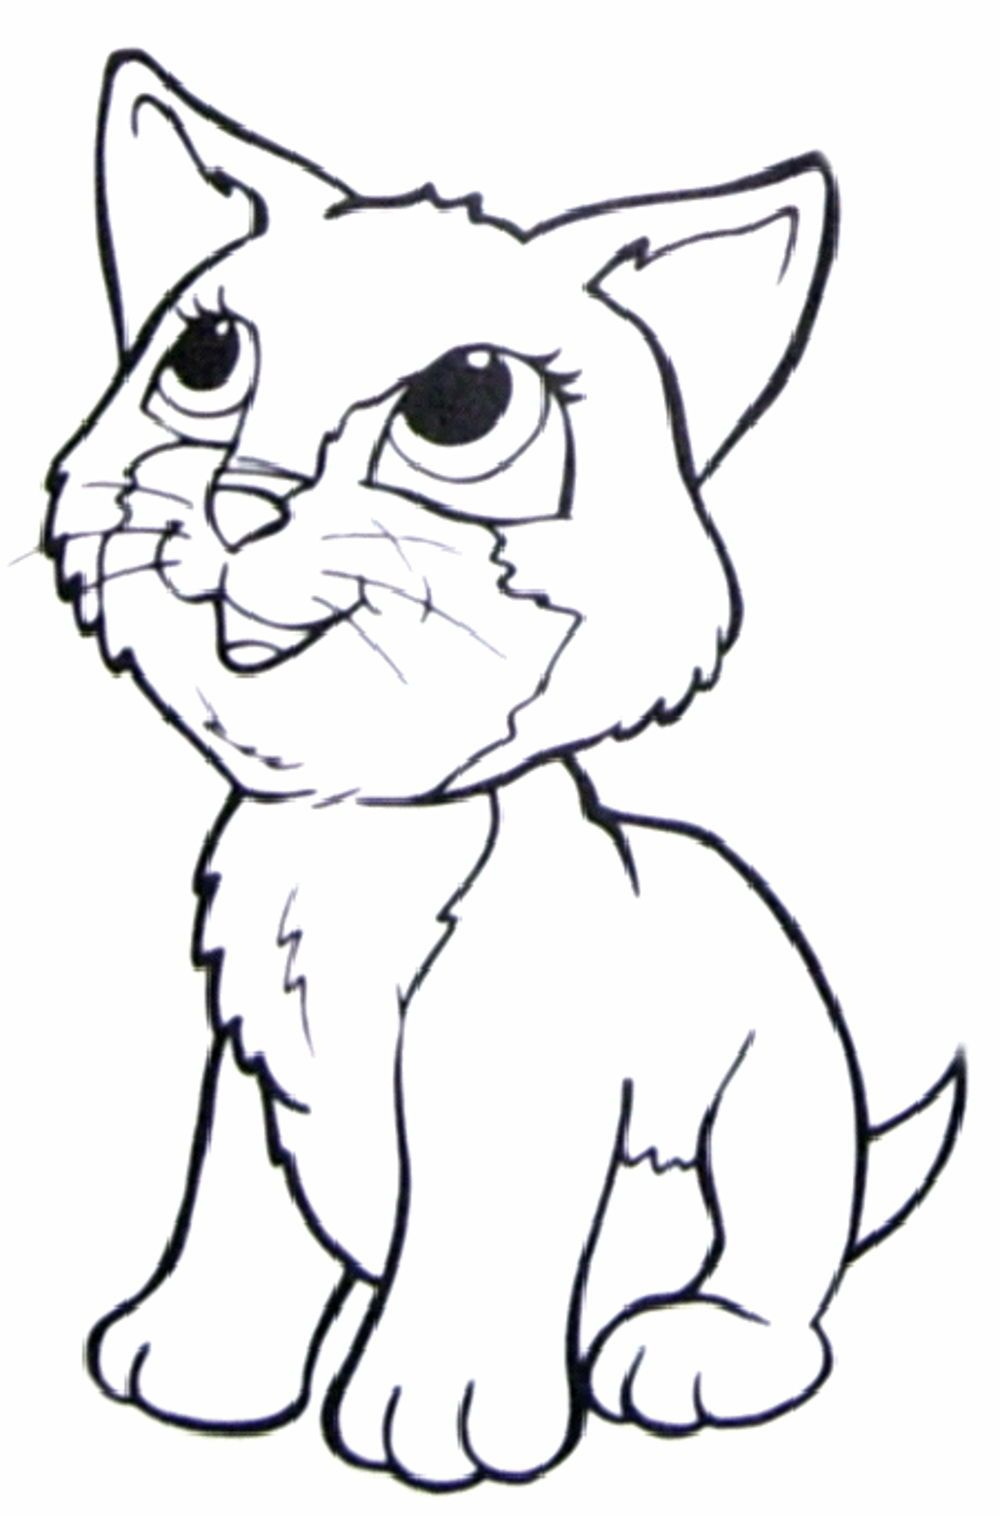 Cats And Dogs Coloring Pages To Print Coloring Pages